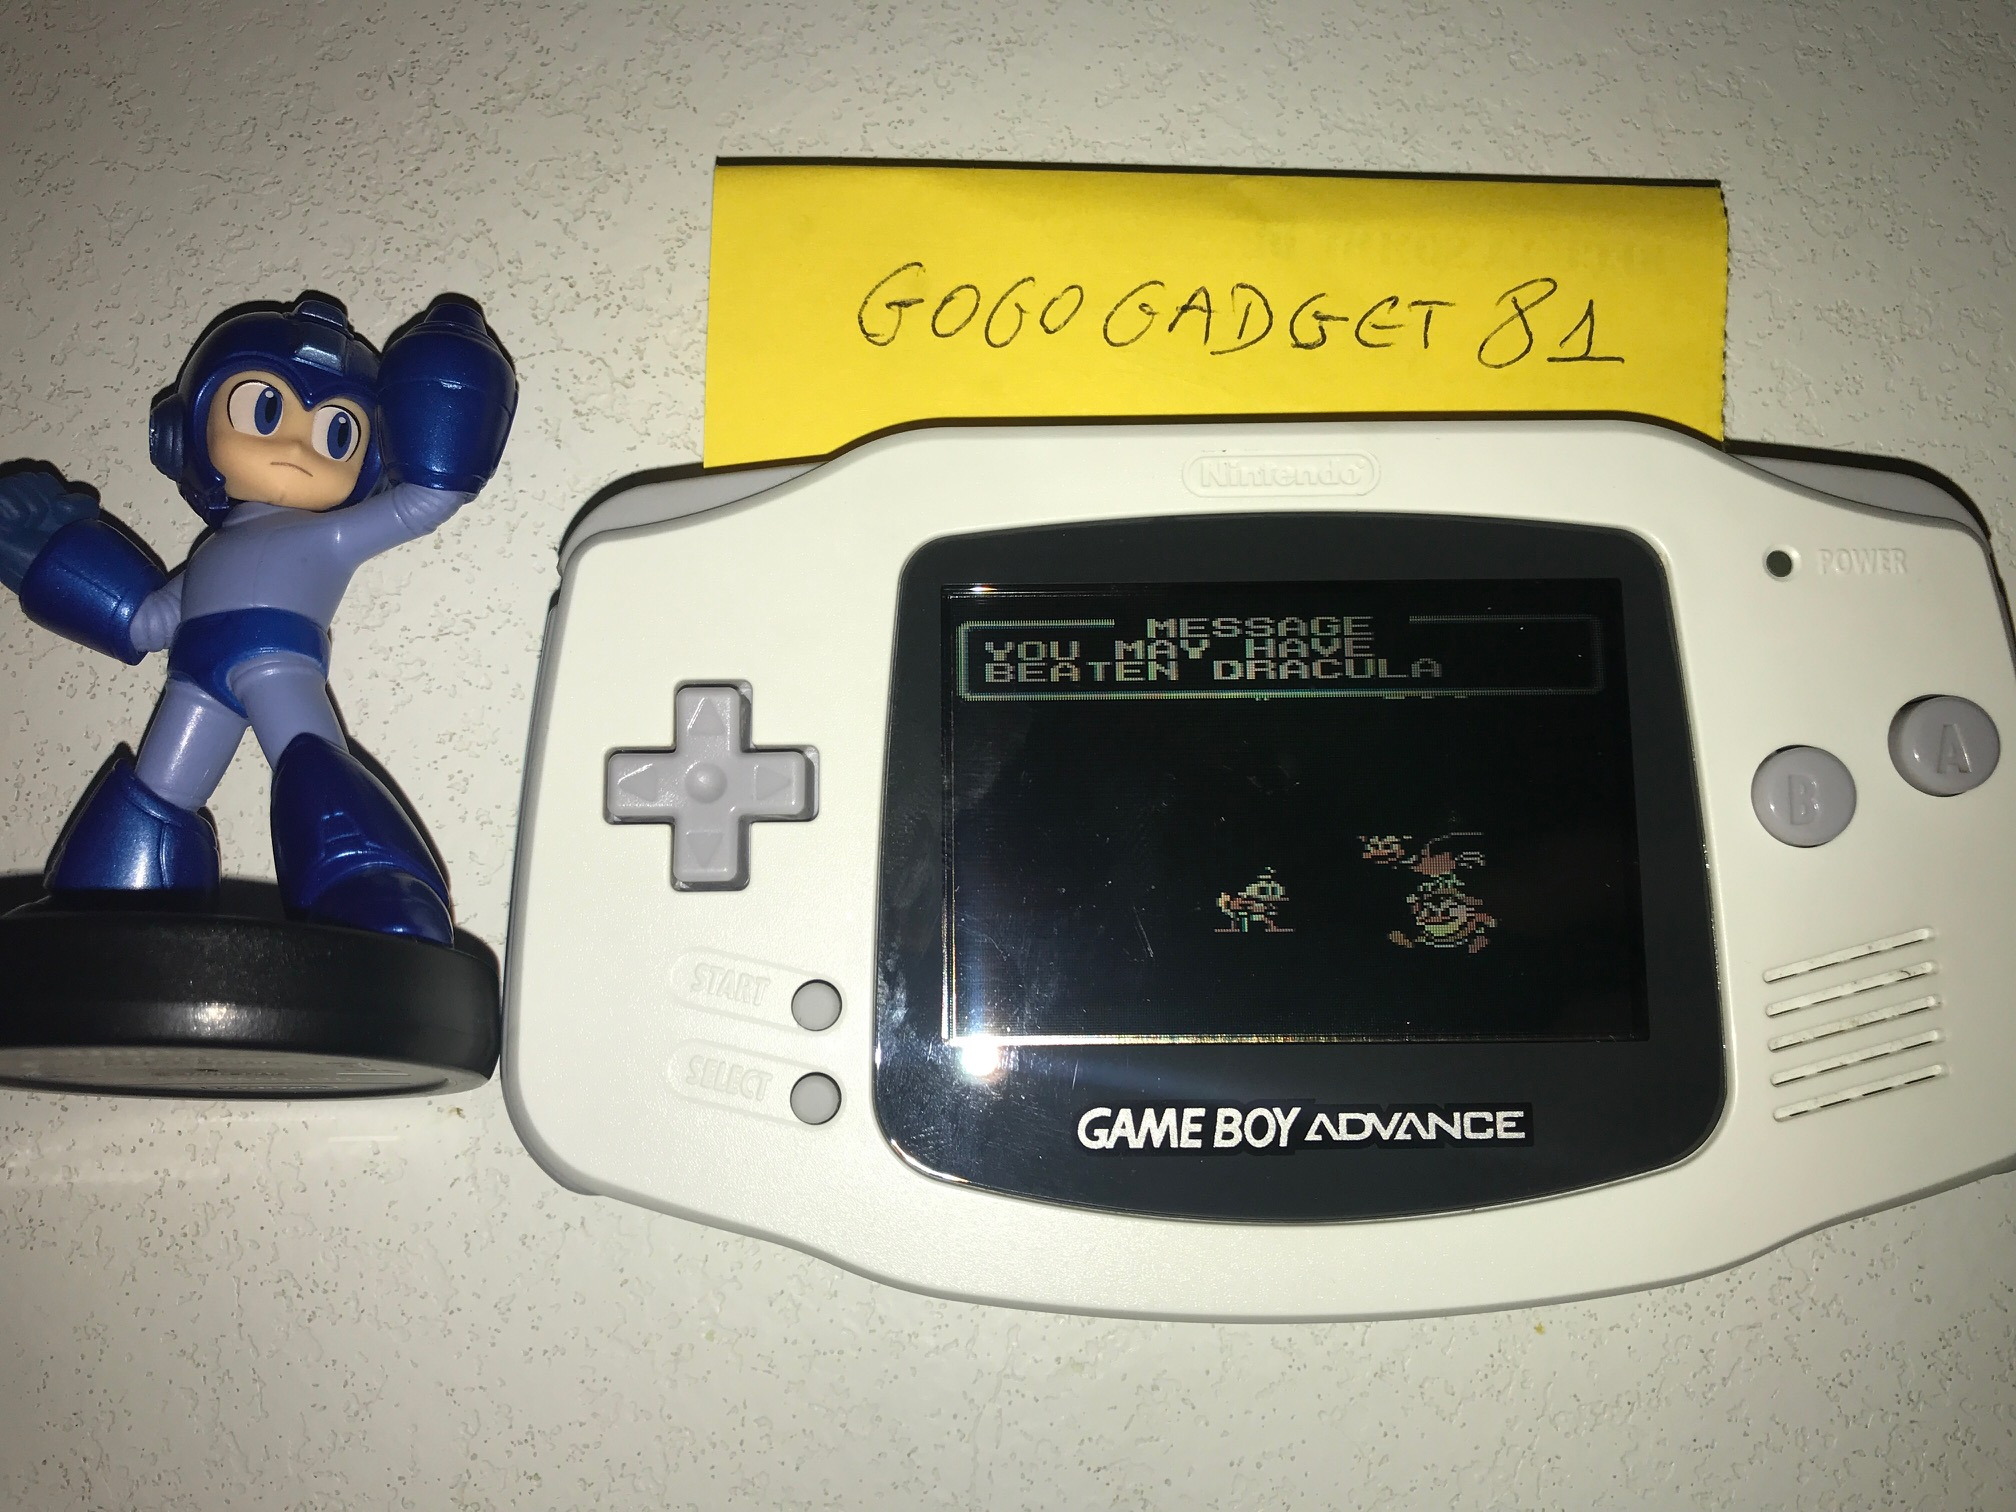 GogoGadget81: Duck Tales [Easy] (Game Boy) 10,239,000 points on 2020-02-25 12:21:48